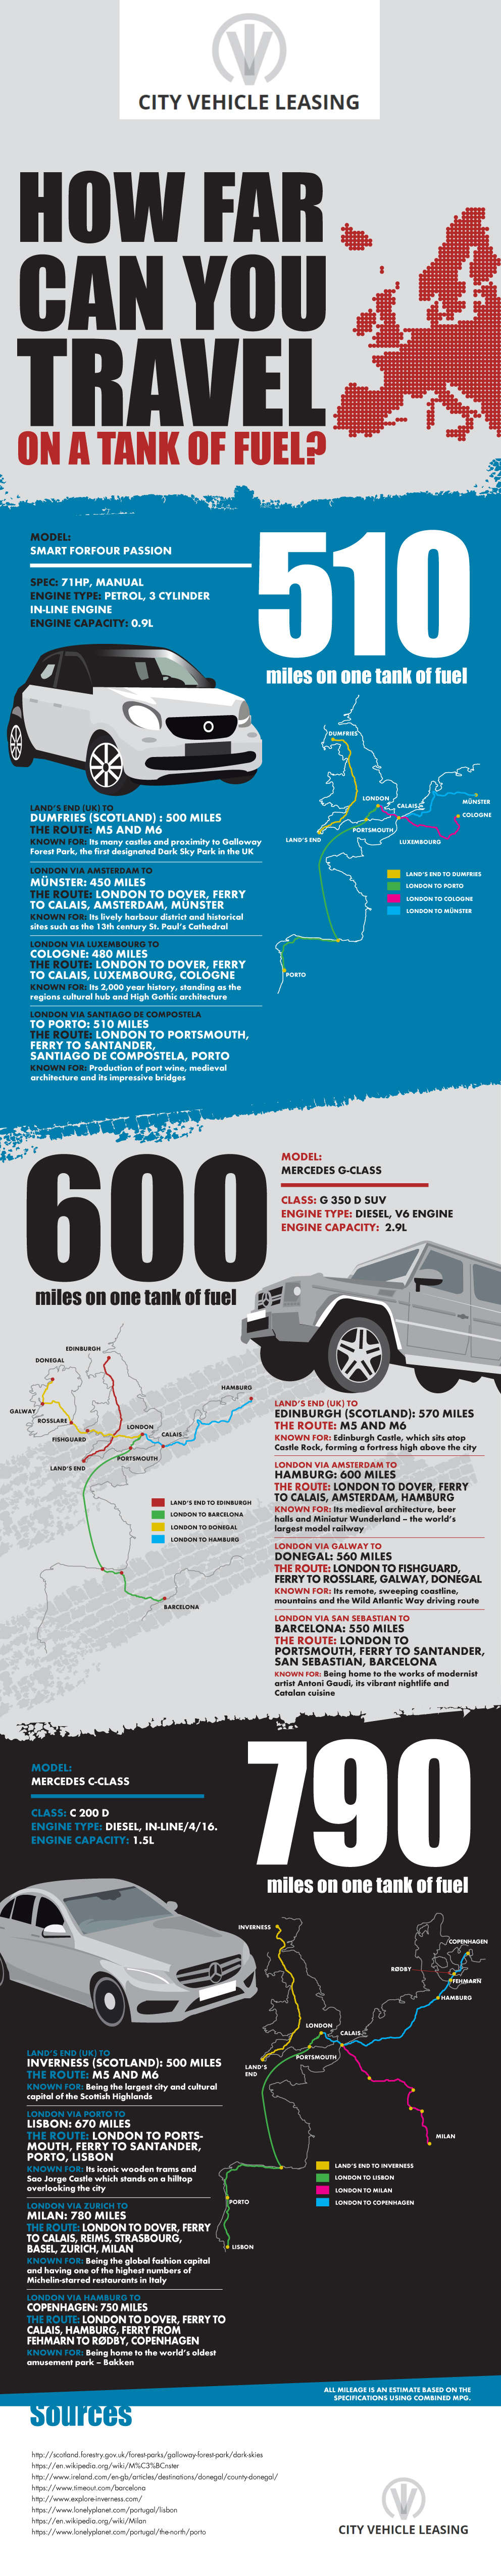 City-Vehicle-Leasing_How-far-can-you-travel-on-a-tank-of-fuel-infographic-plaza